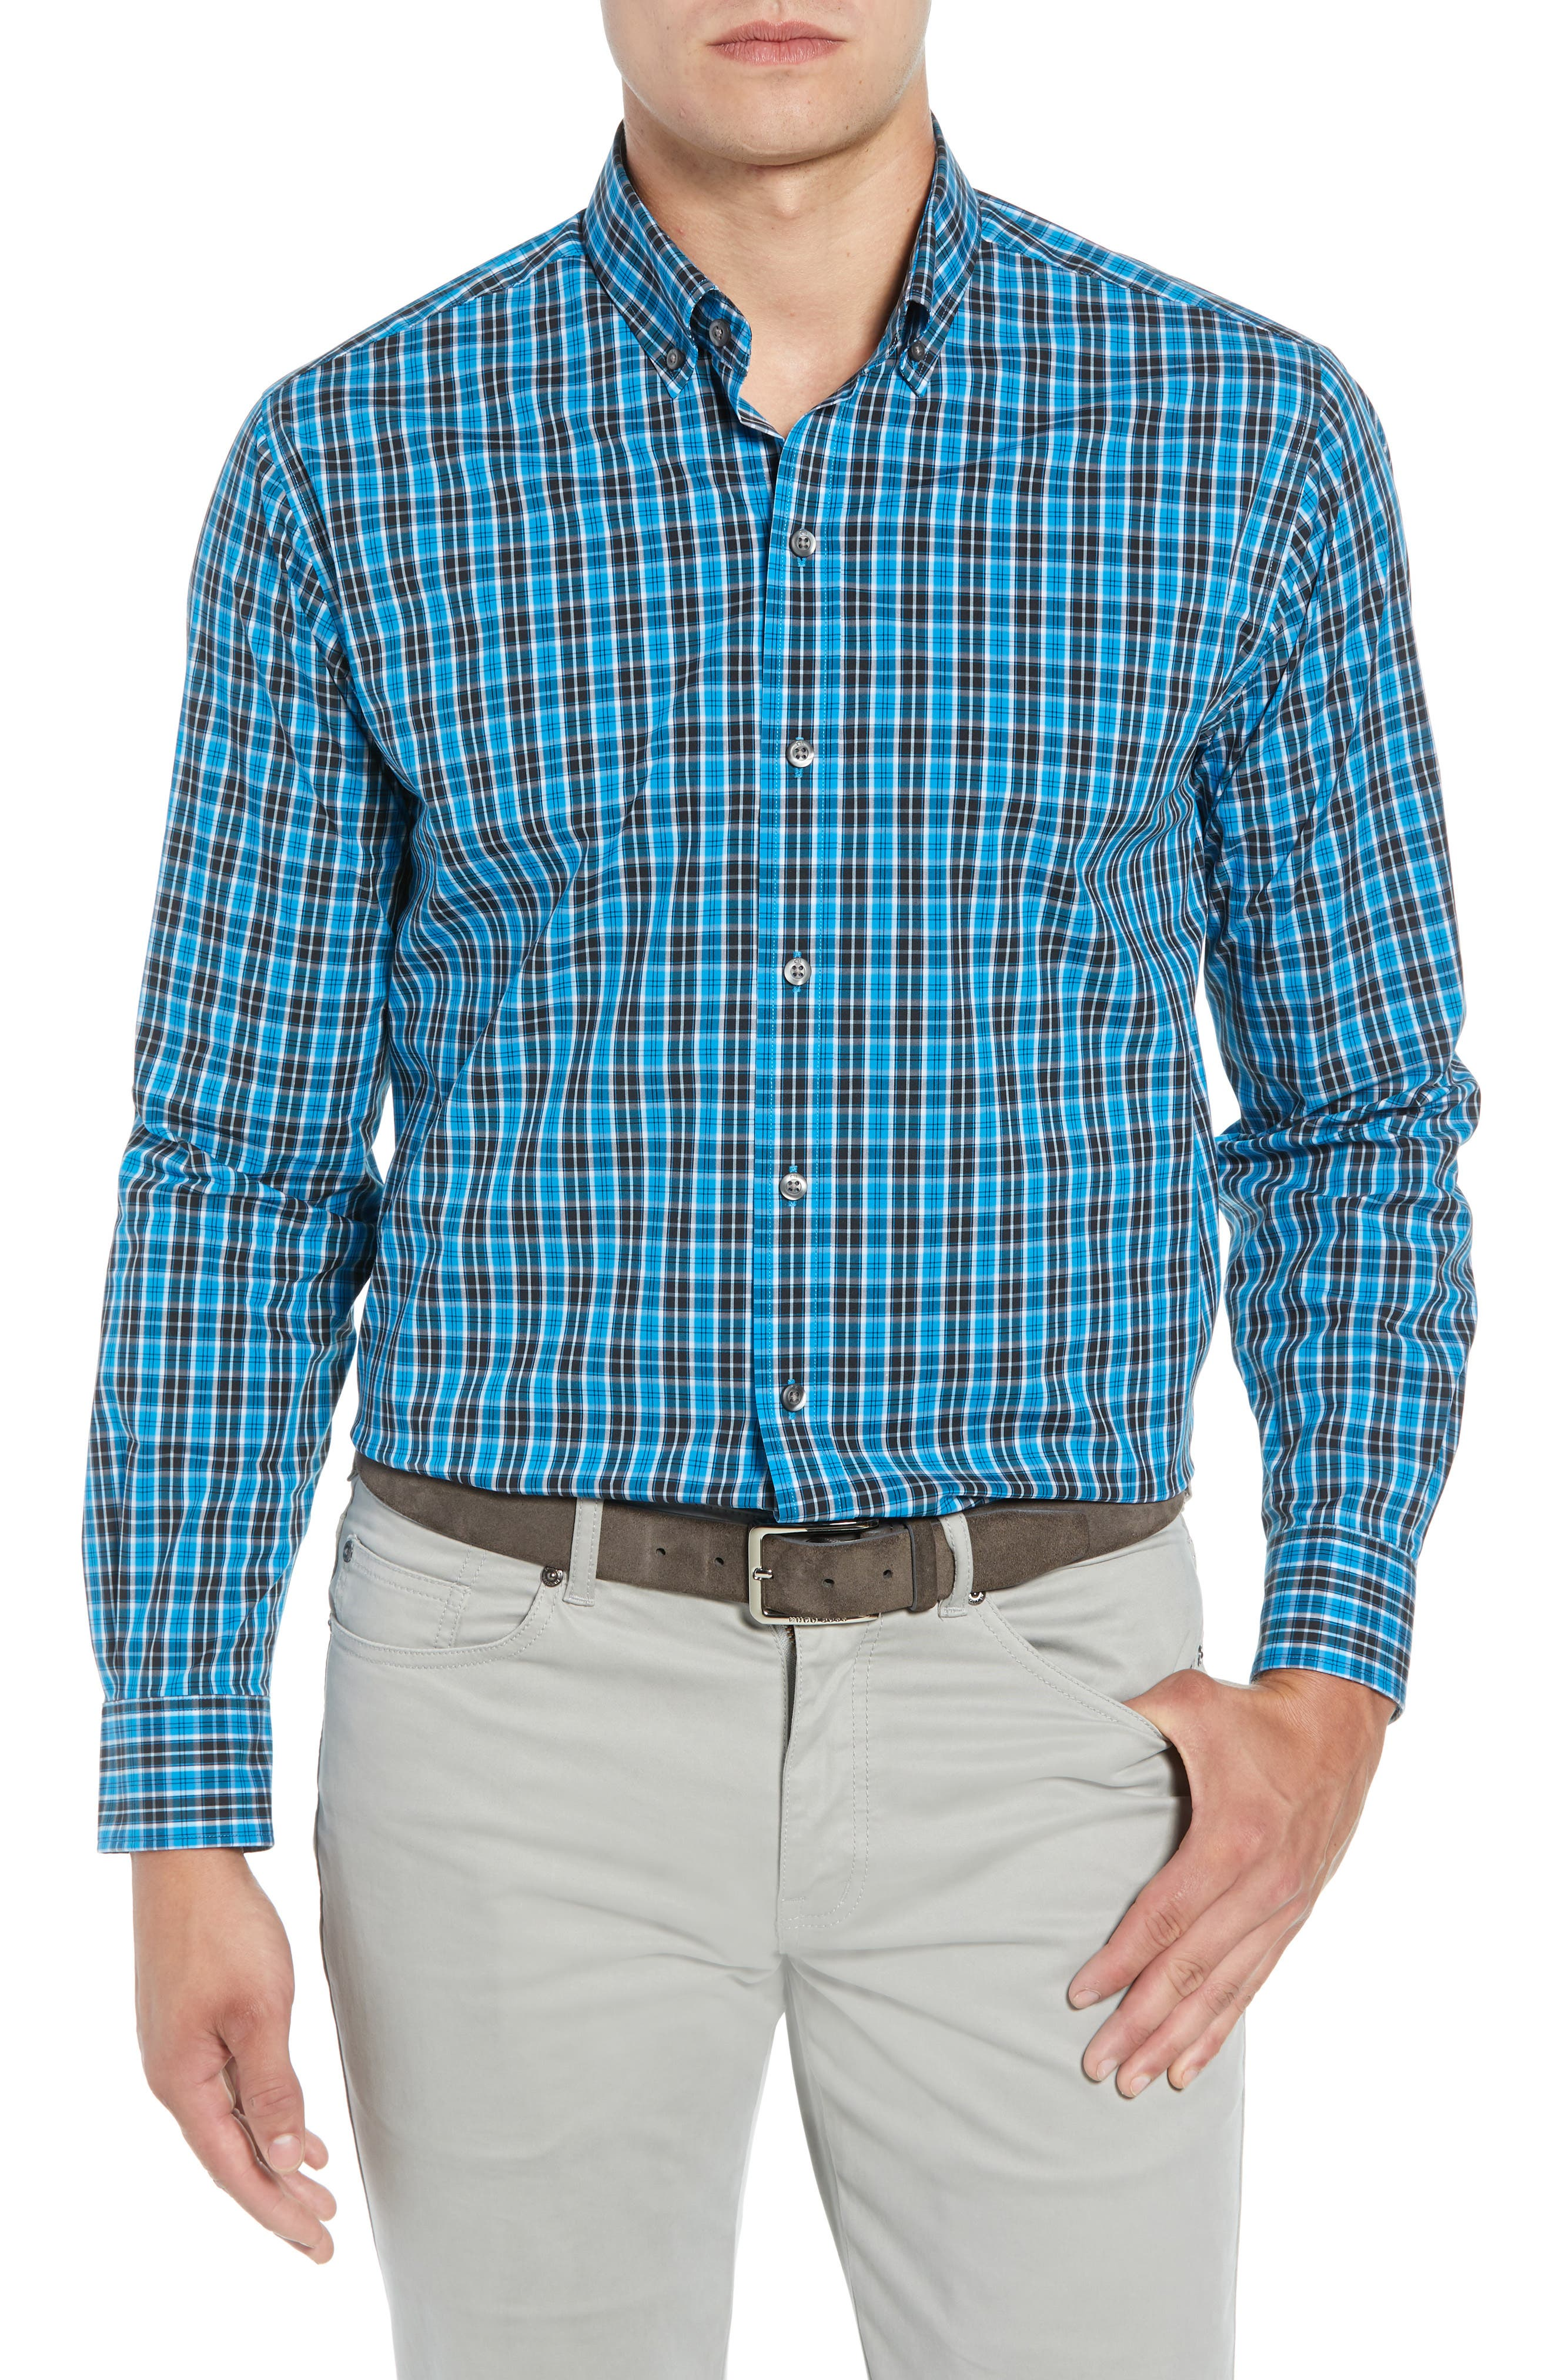 Ronald Regular Fit Plaid Performance Sport Shirt,                             Main thumbnail 1, color,                             ORBIT